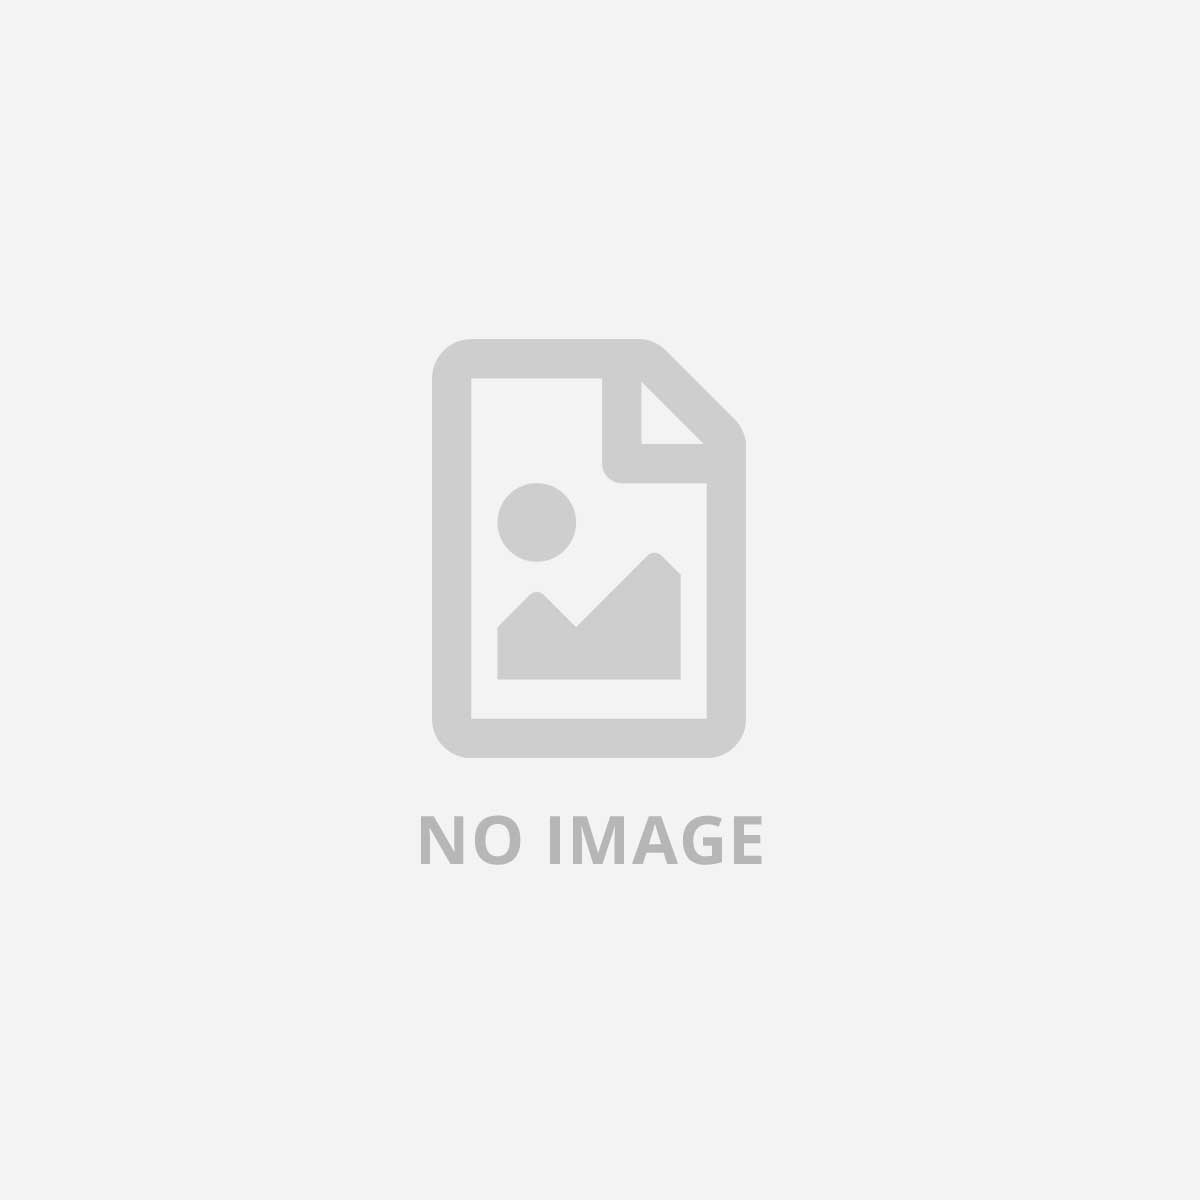 CONCEPTRONIC WIRELESS IP CAM 720P PAN TILT